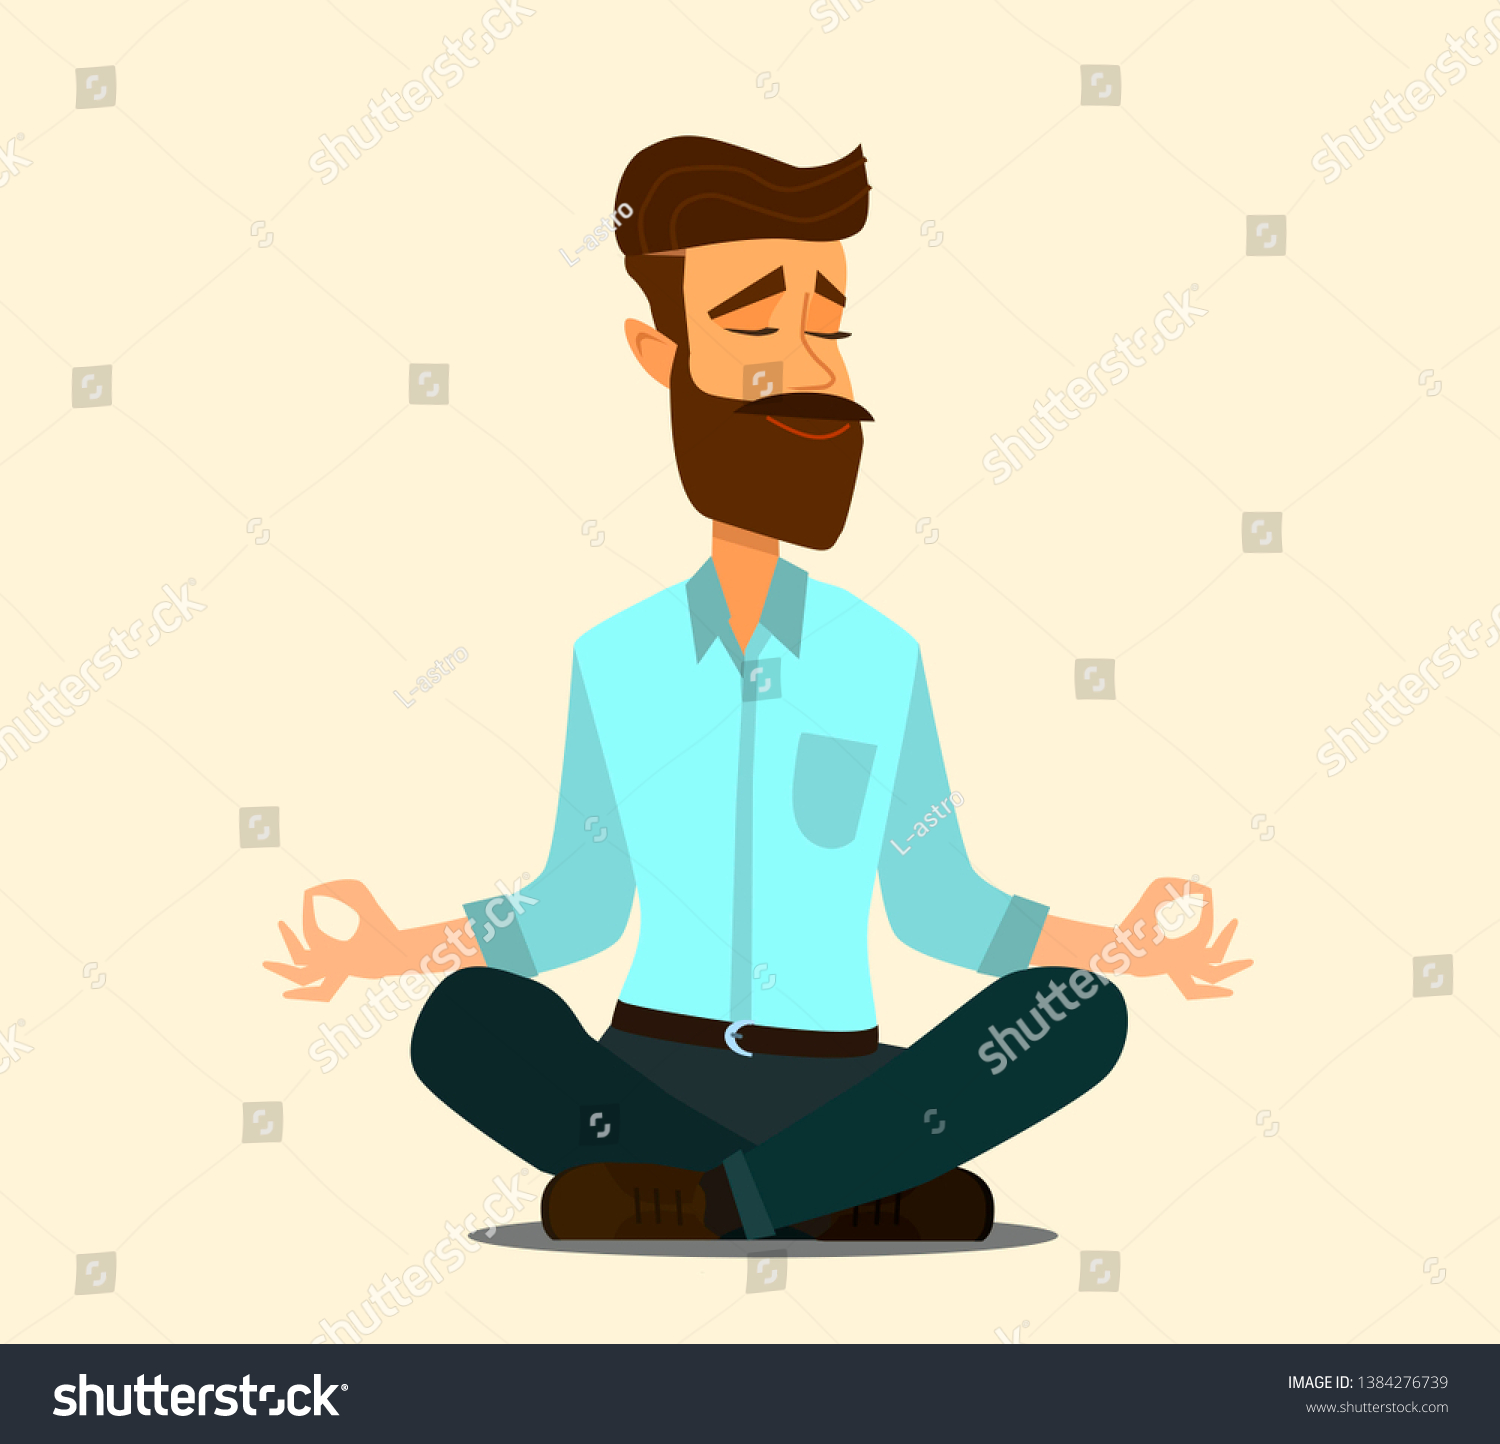 Relaxing Stress Relief Workplace Cartoon Vector Stock Vector Royalty Free 1384276739